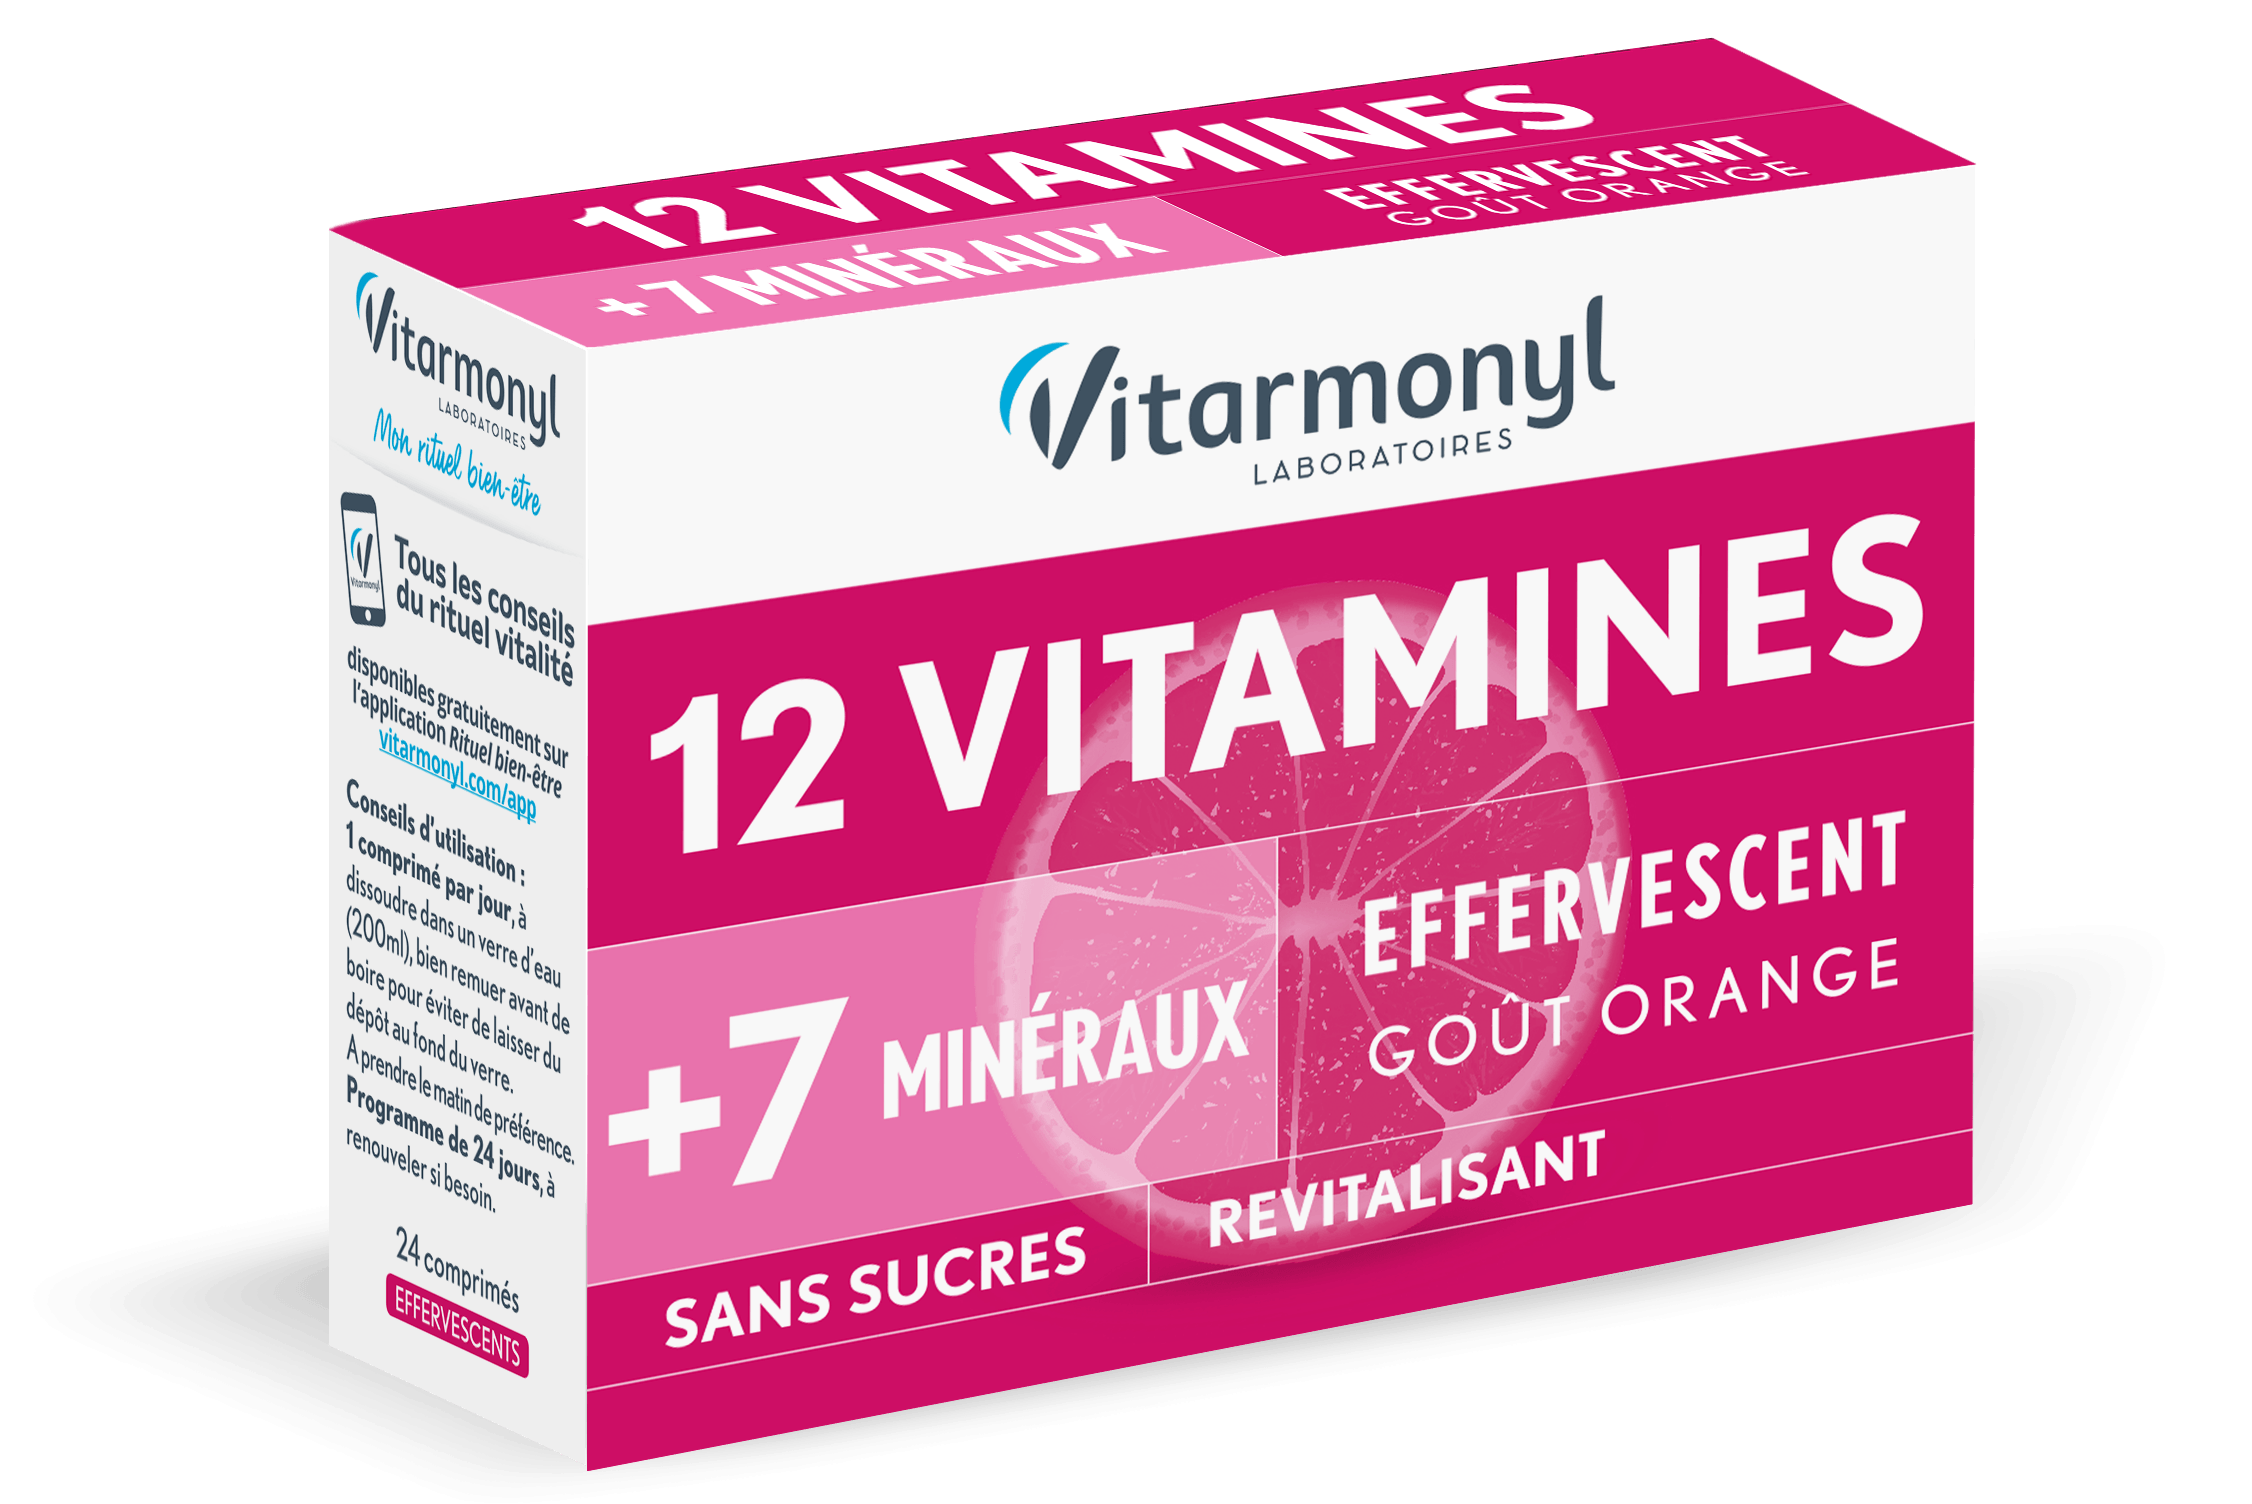 Image 12 vitamines + 7 Oligo-éléments